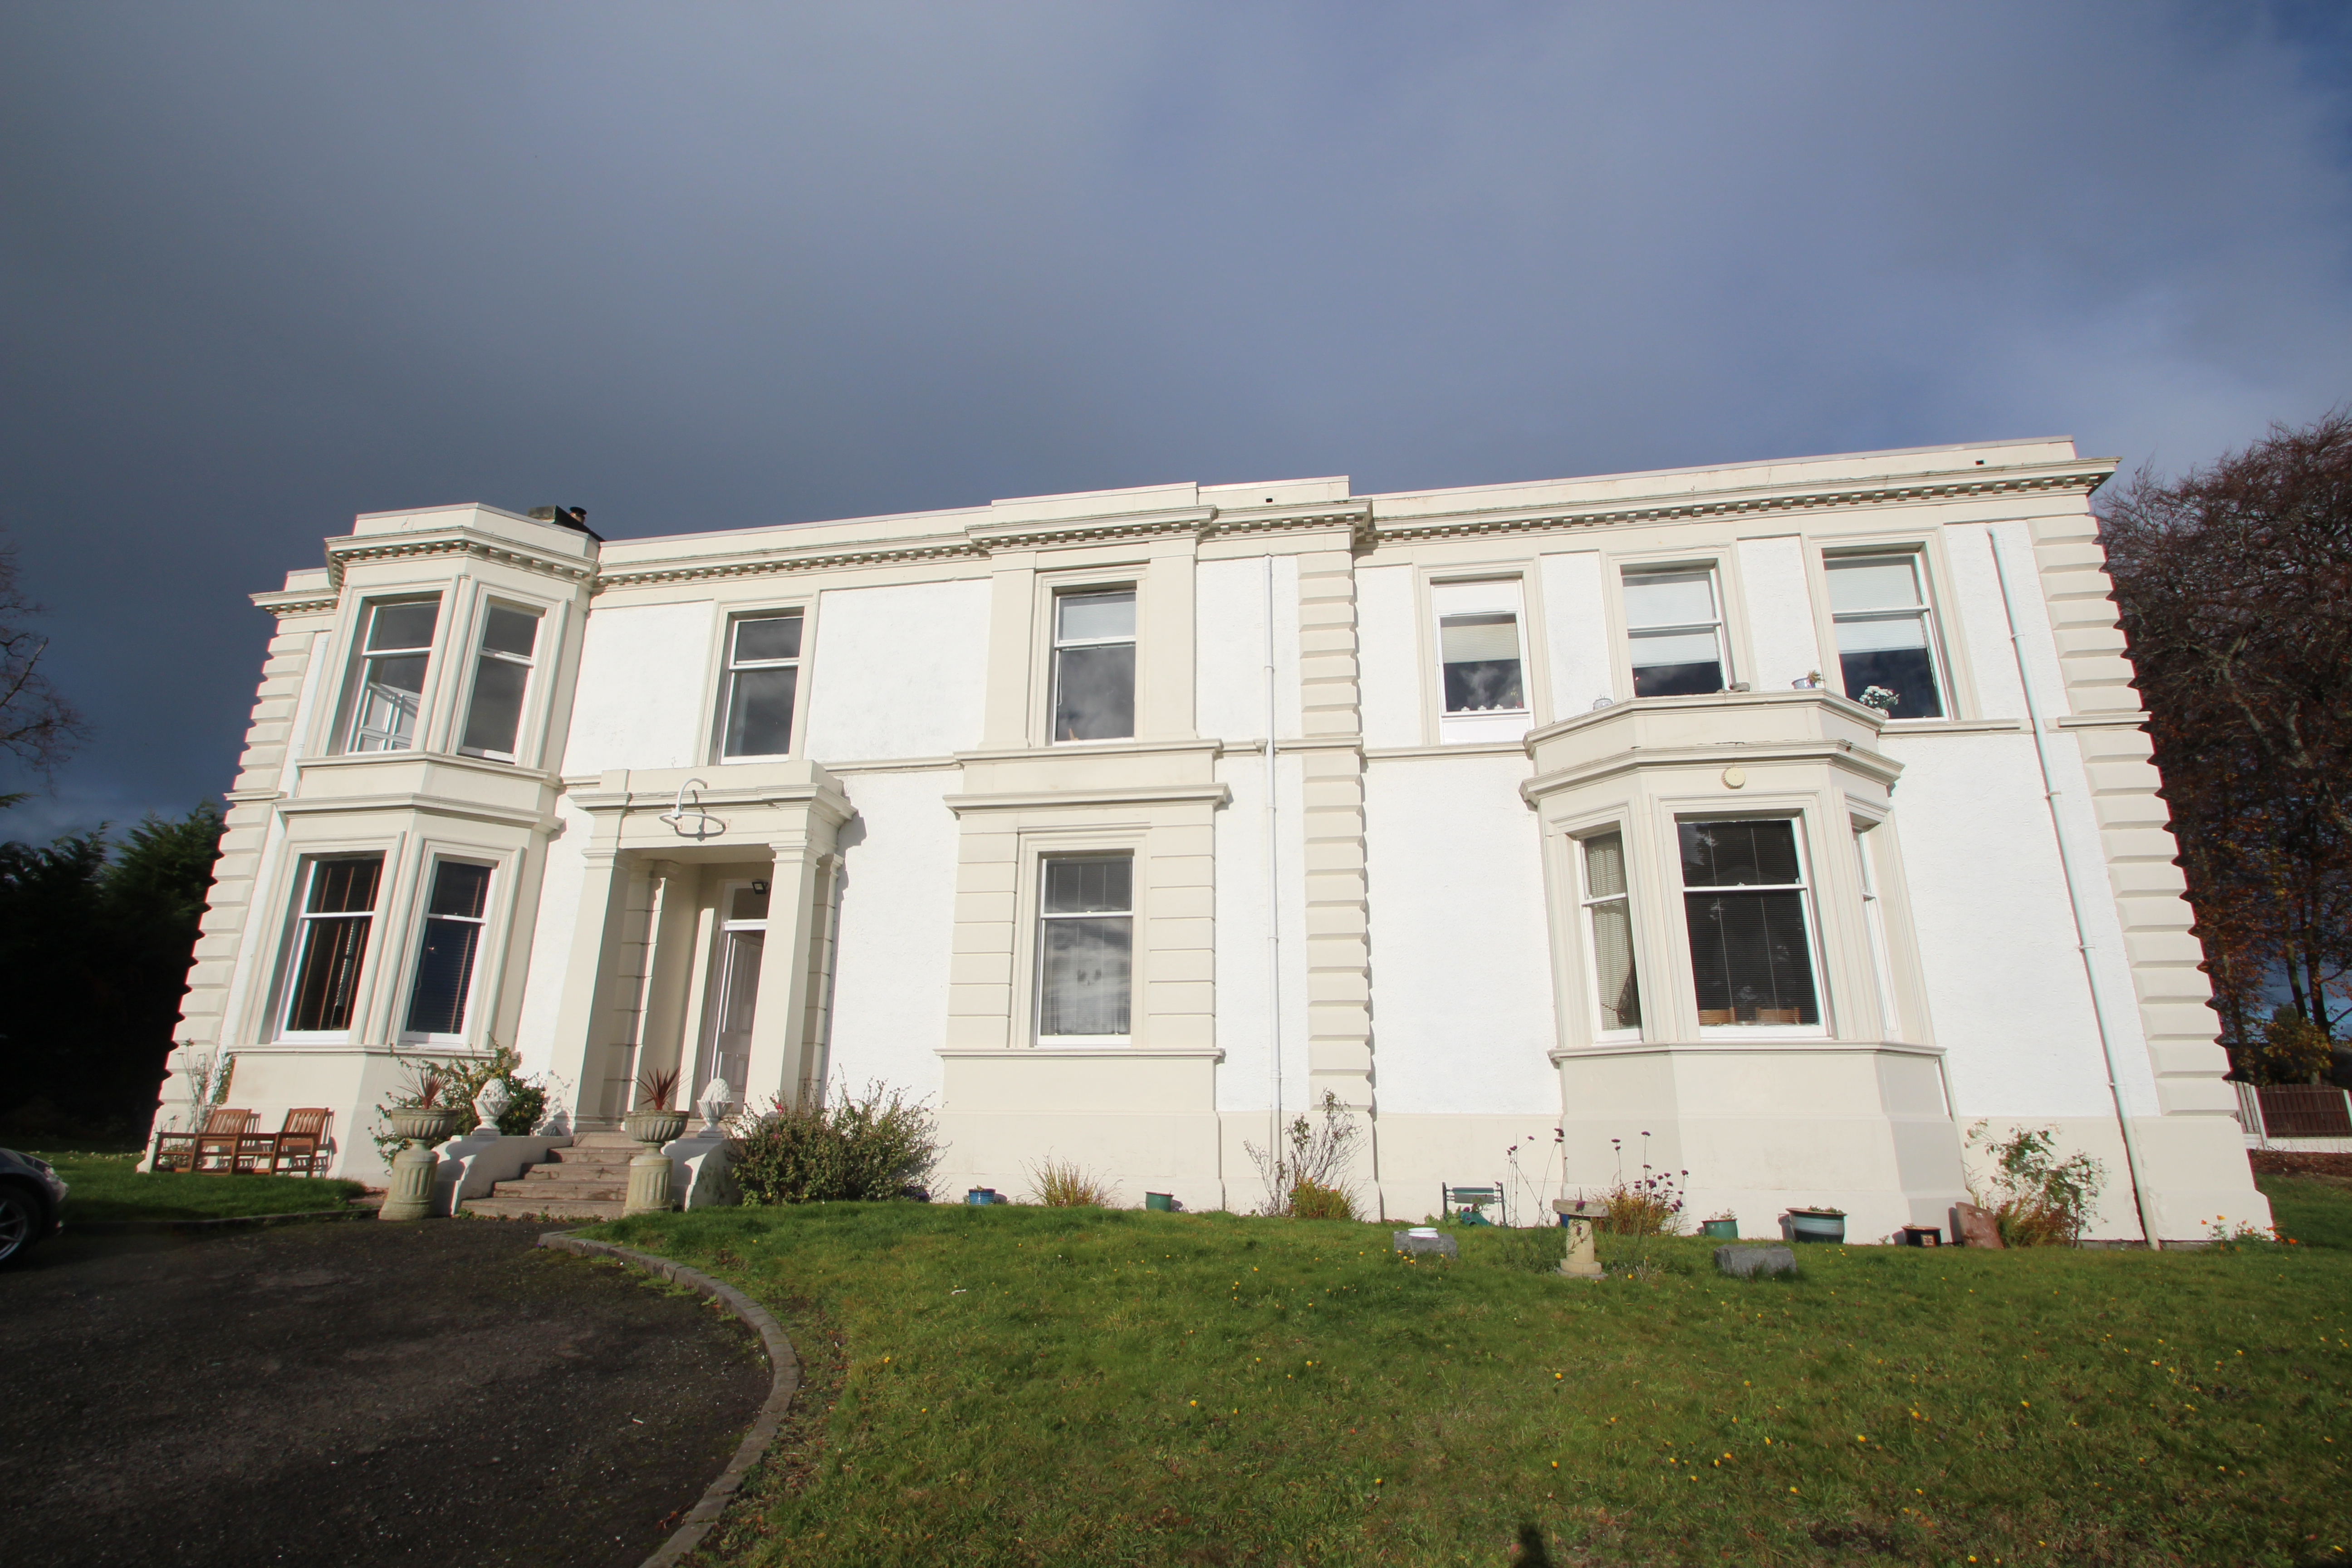 Flat 2 Grange House, 12 Grange Lane, Monifieth, Angus, DD5 4NB